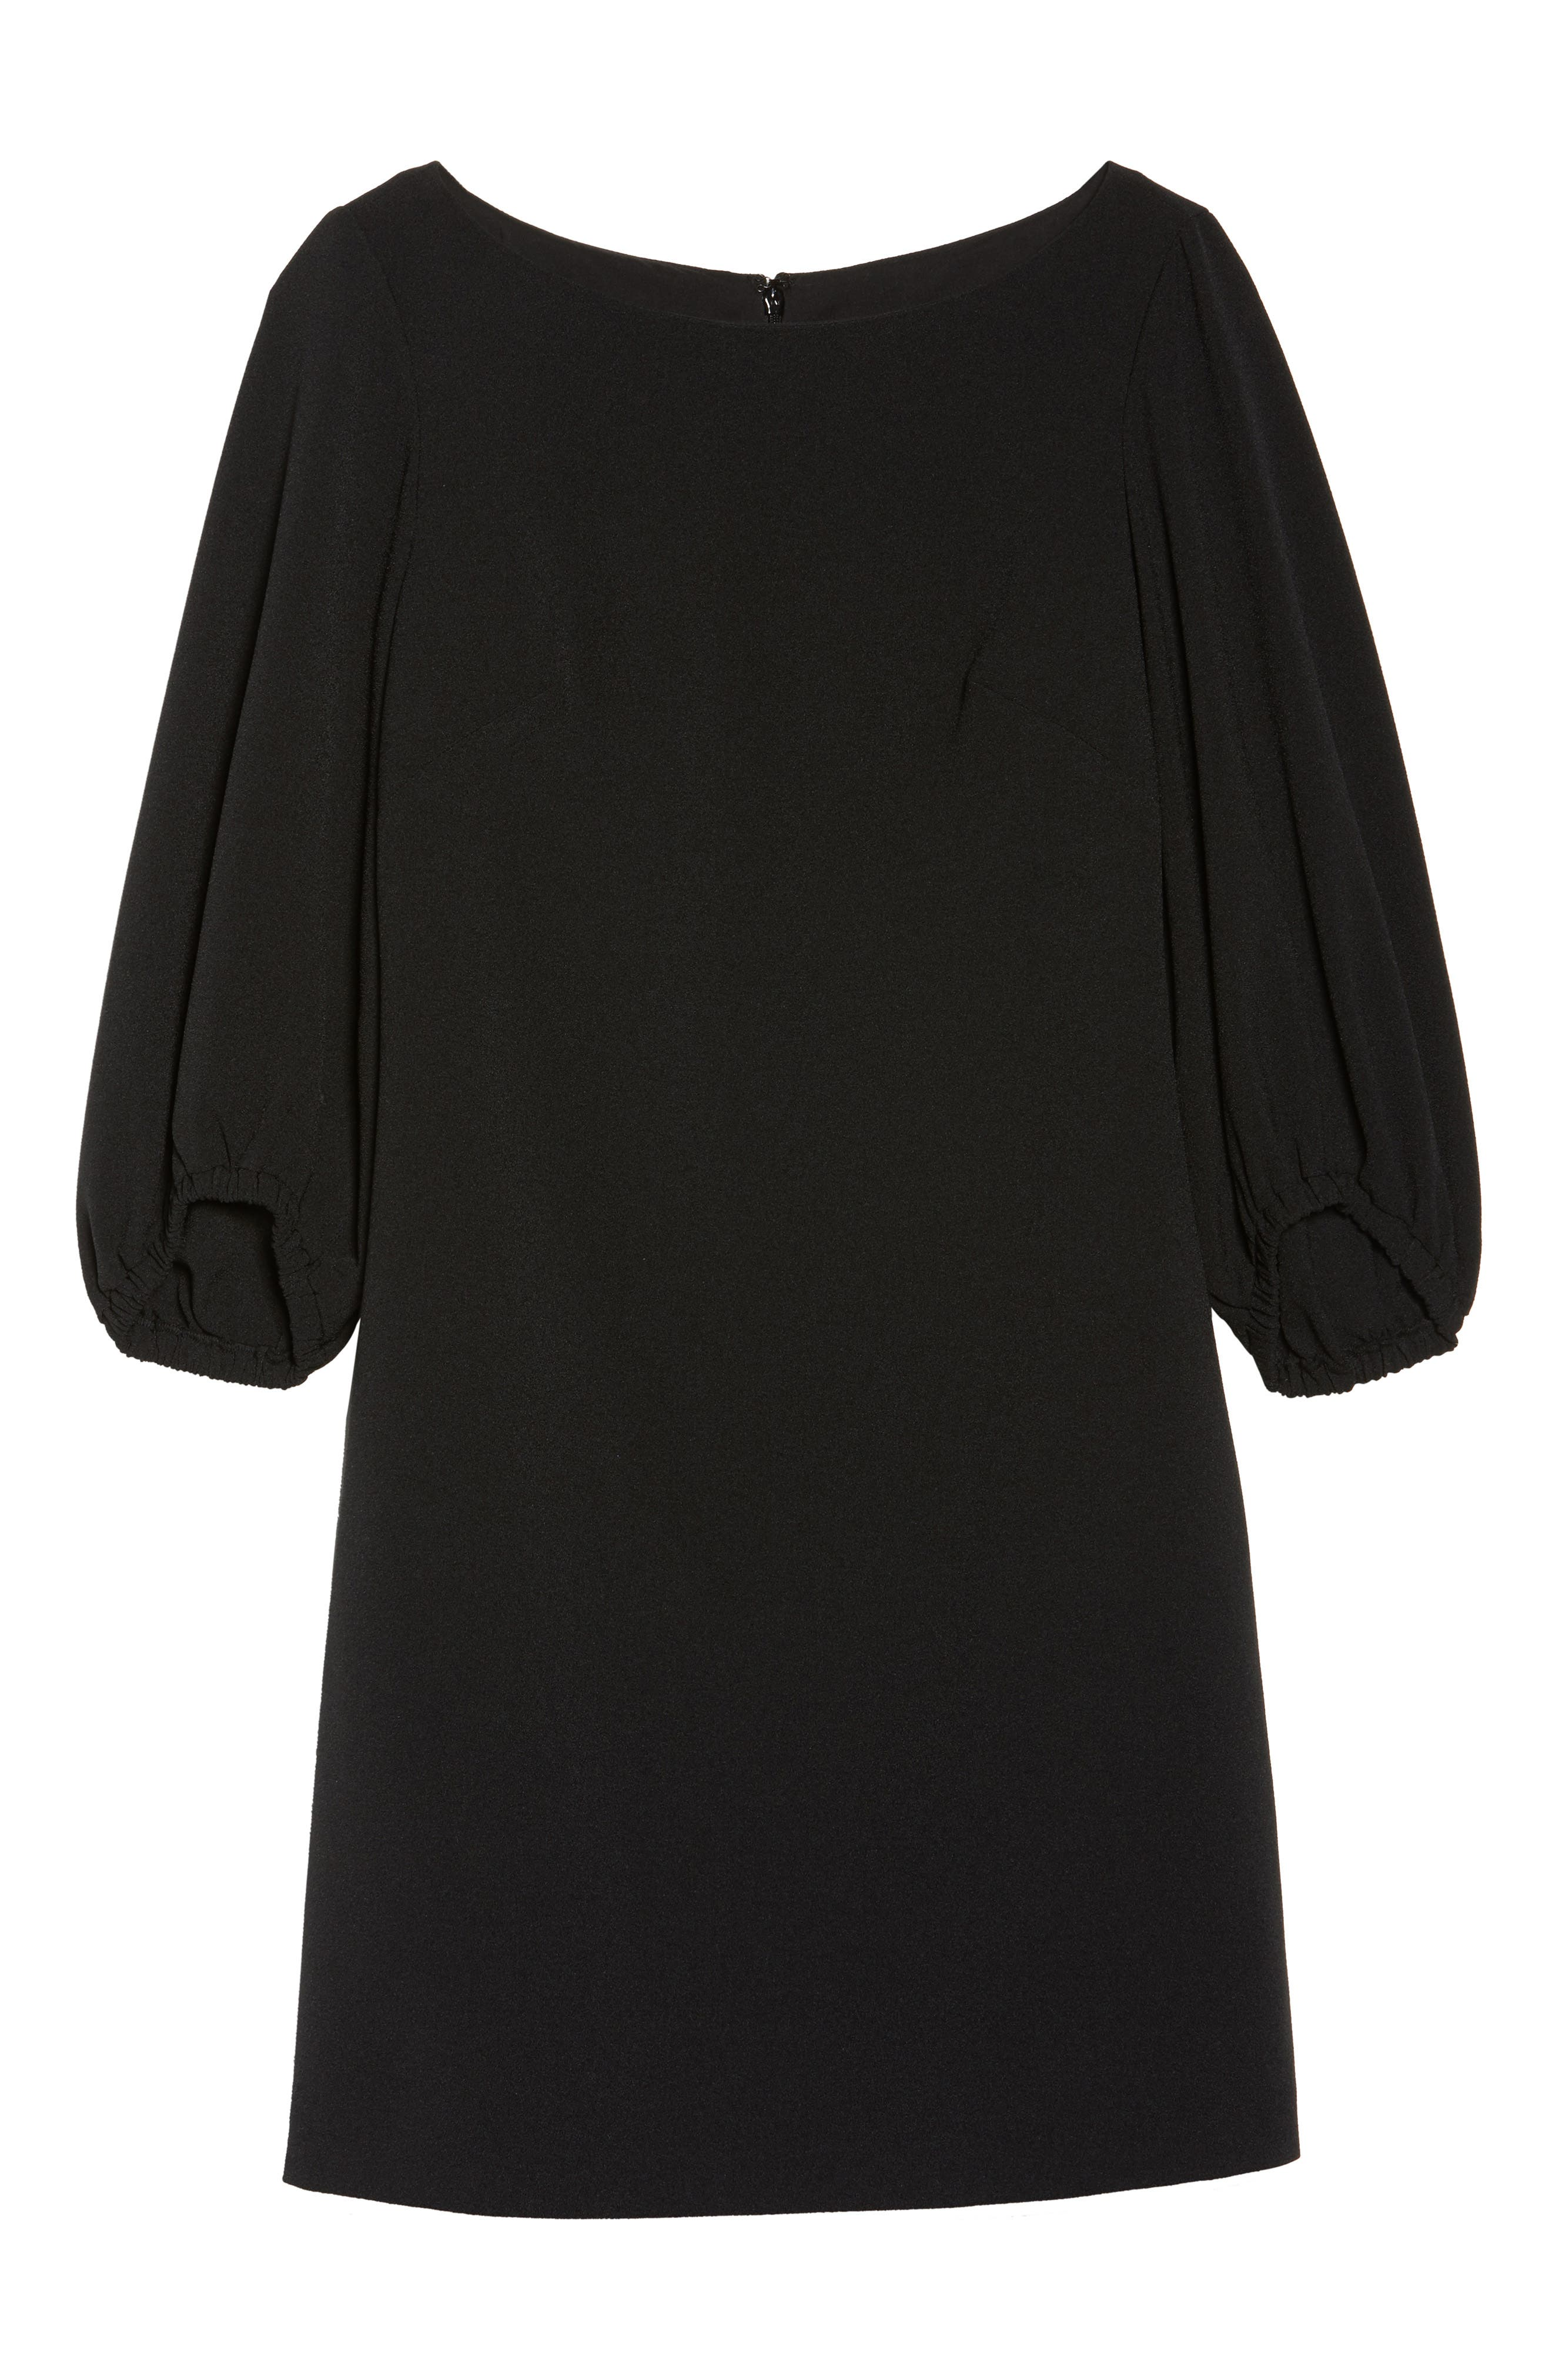 Bloused Sleeve Shift Dress,                             Alternate thumbnail 6, color,                             Black